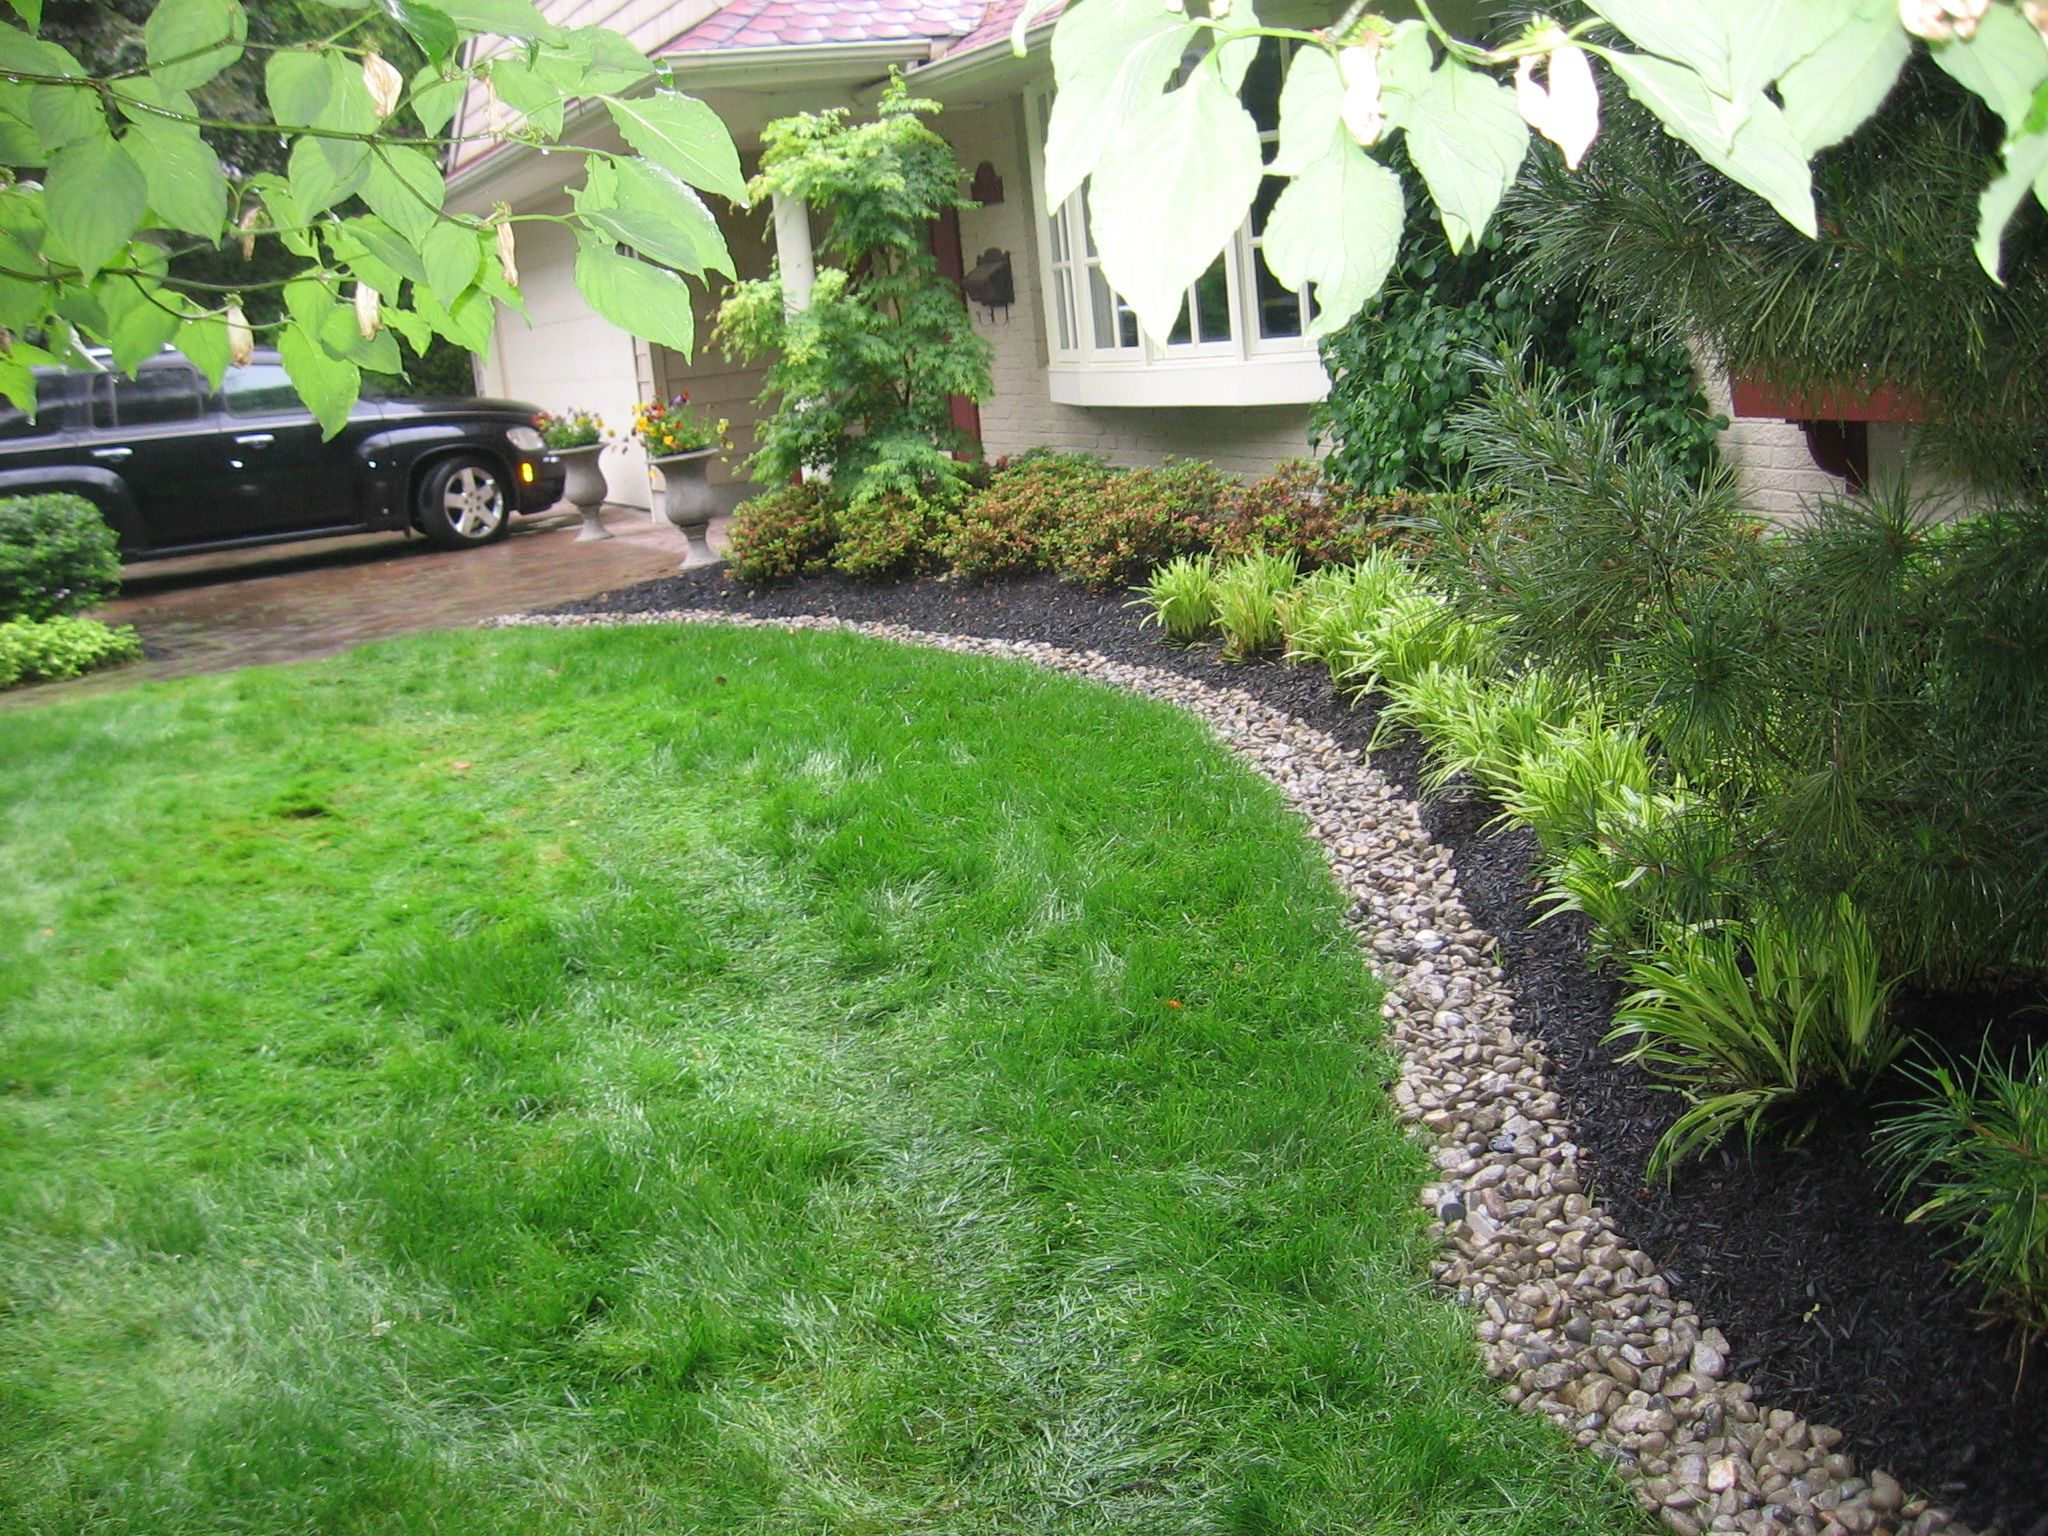 Front yard bed lined with river stone and mulch to create a clean space for  beautifully installed plants, grasses, and trees. Idea for our yard using  the ...